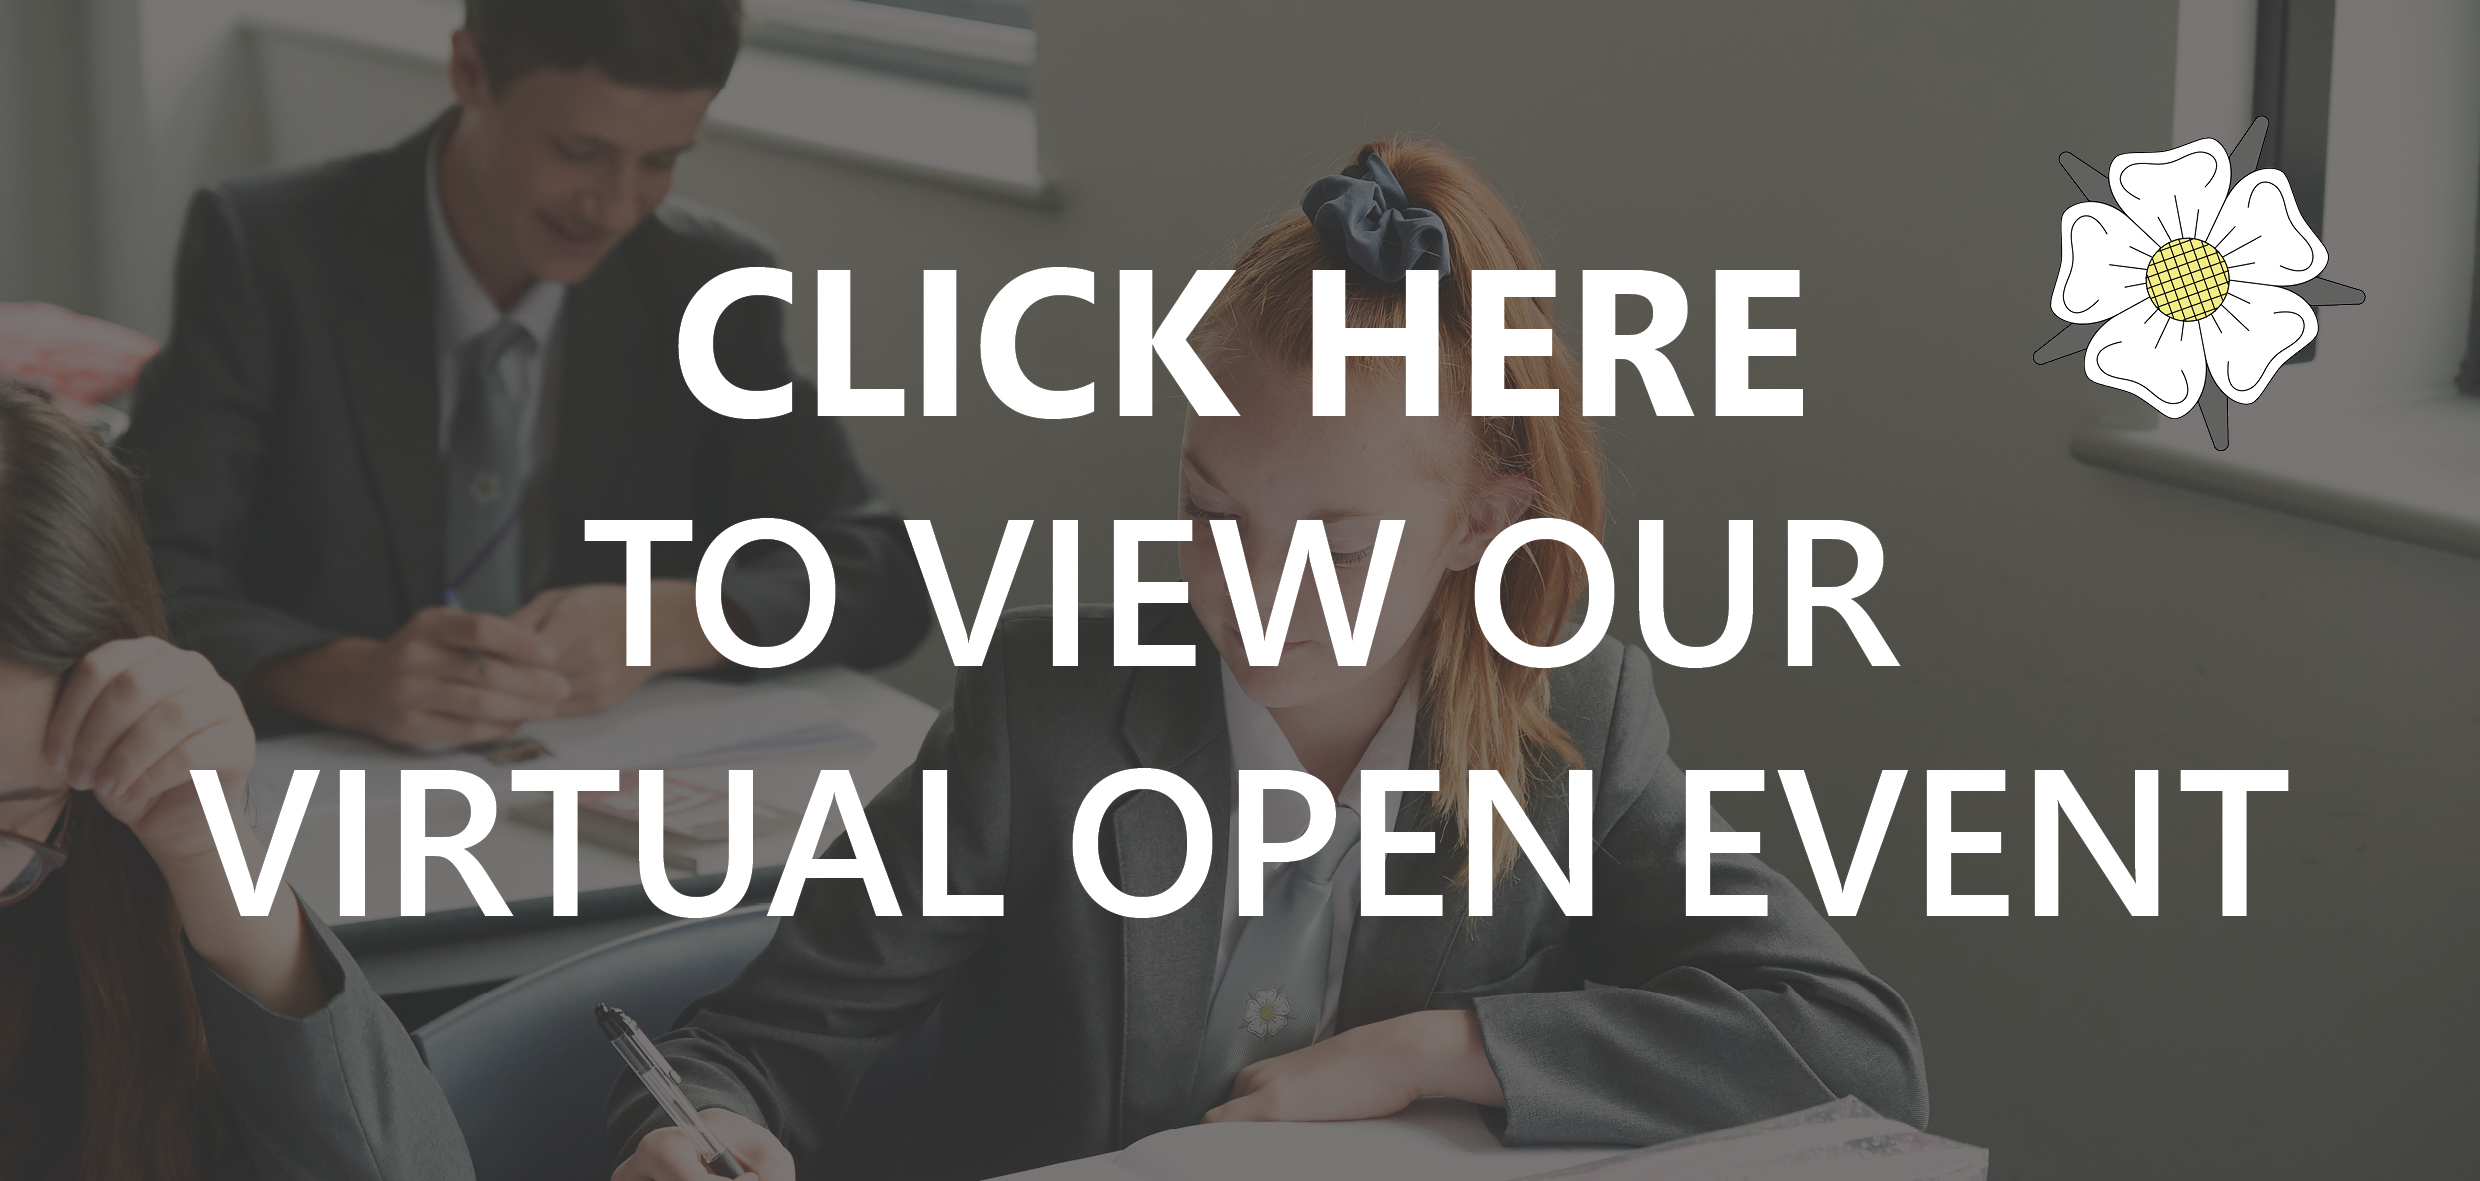 CLICK HERE TO VIEW OUR VIRTUAL OPEN EVENT